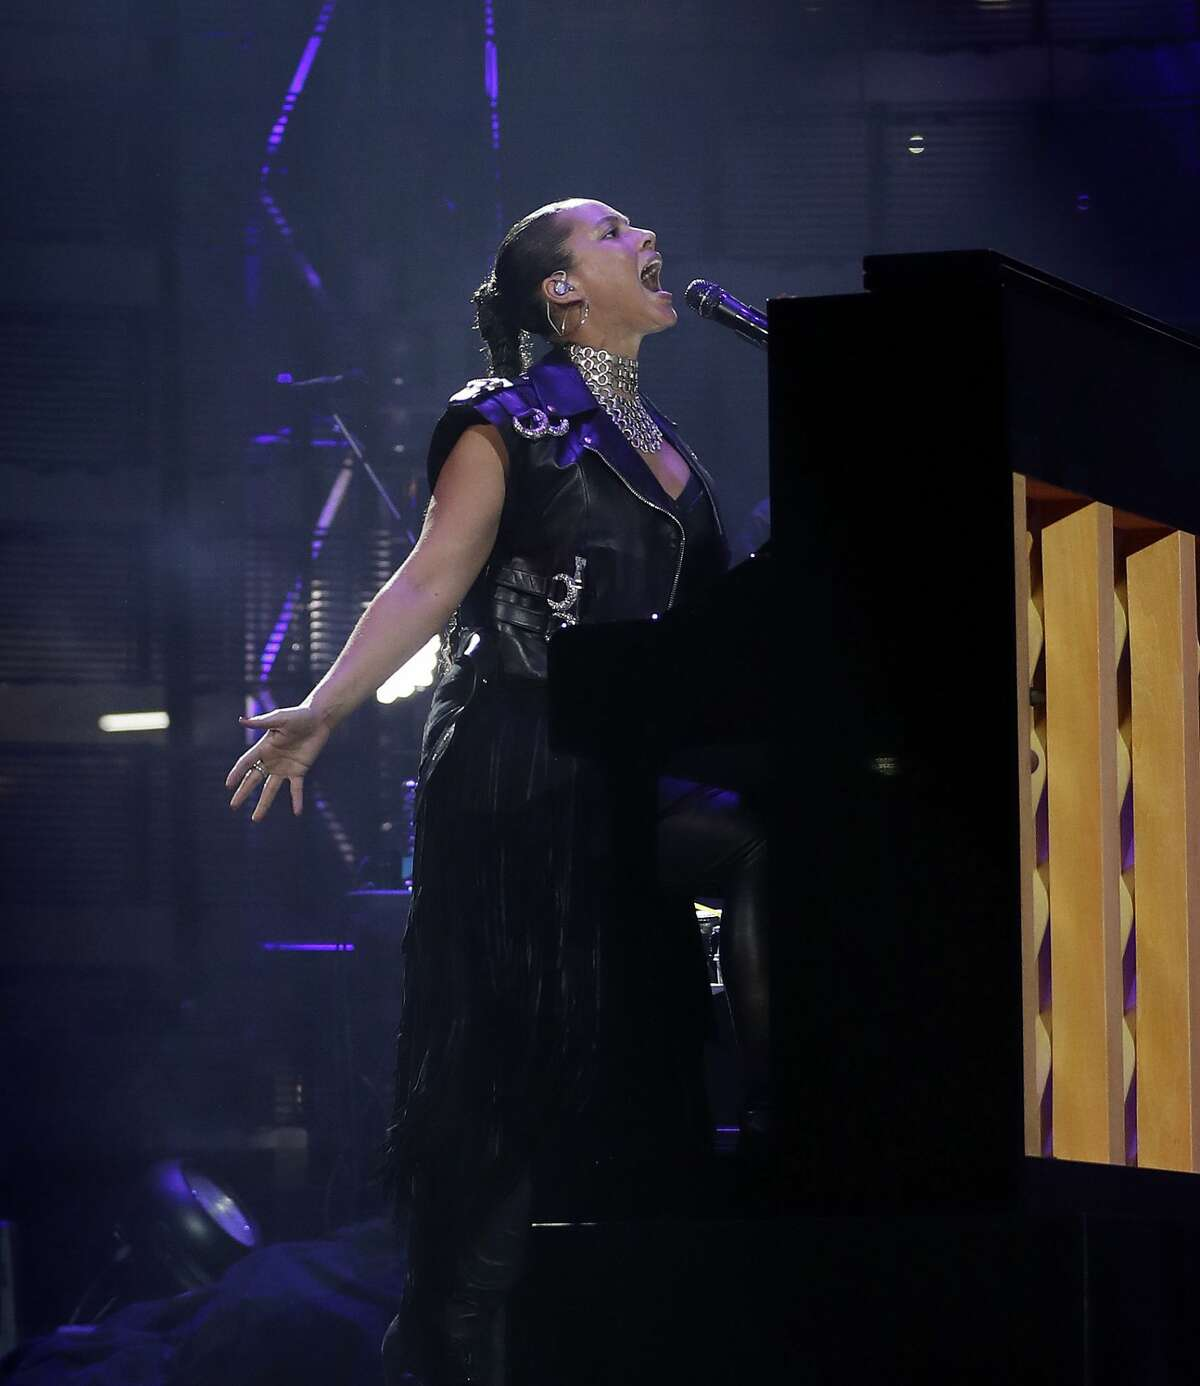 Alicia Keys performs at the Houston Livestock Show and Rodeo, at NRG Park, Friday, March 10, 2017, in Houston. ( Karen Warren / Houston Chronicle )